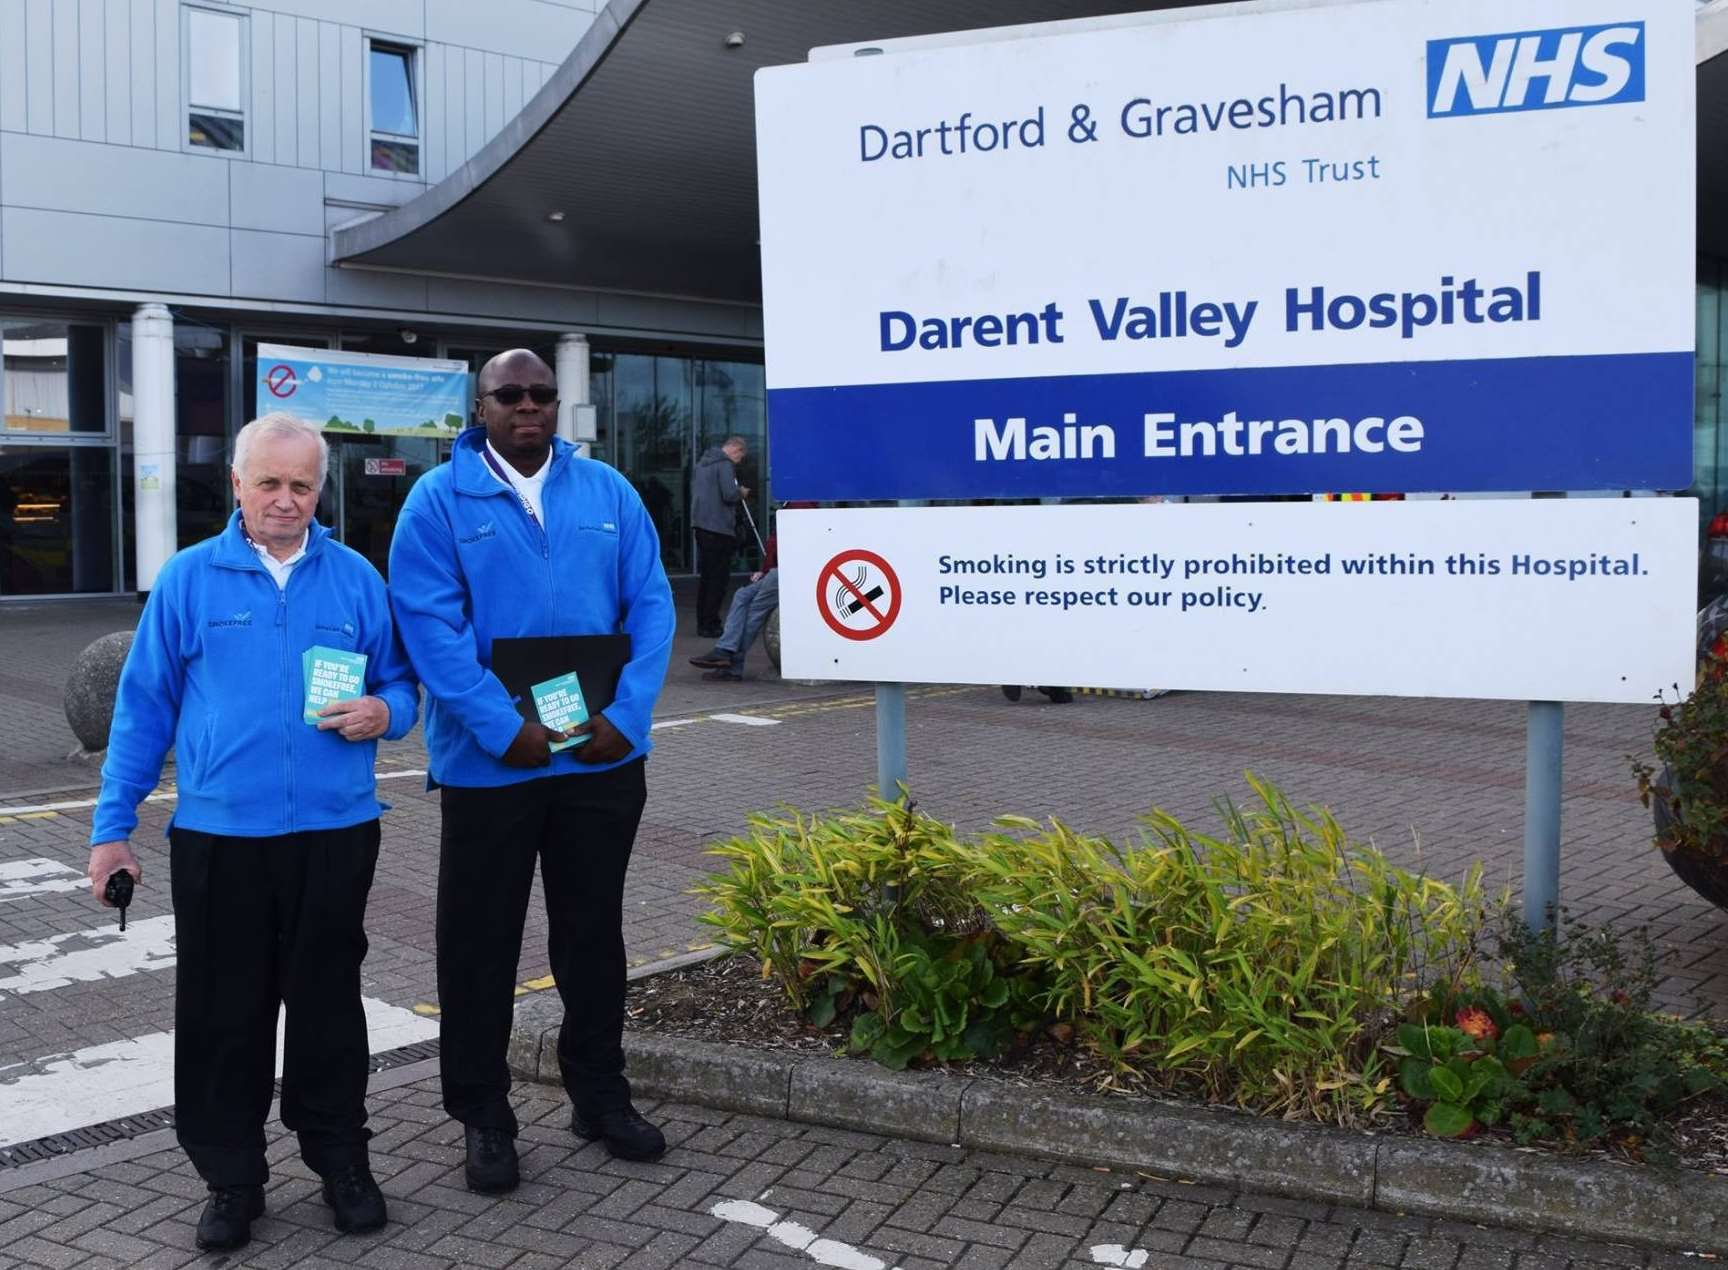 Wardens Bob and Charles on patrol at Darent Valley Hospital